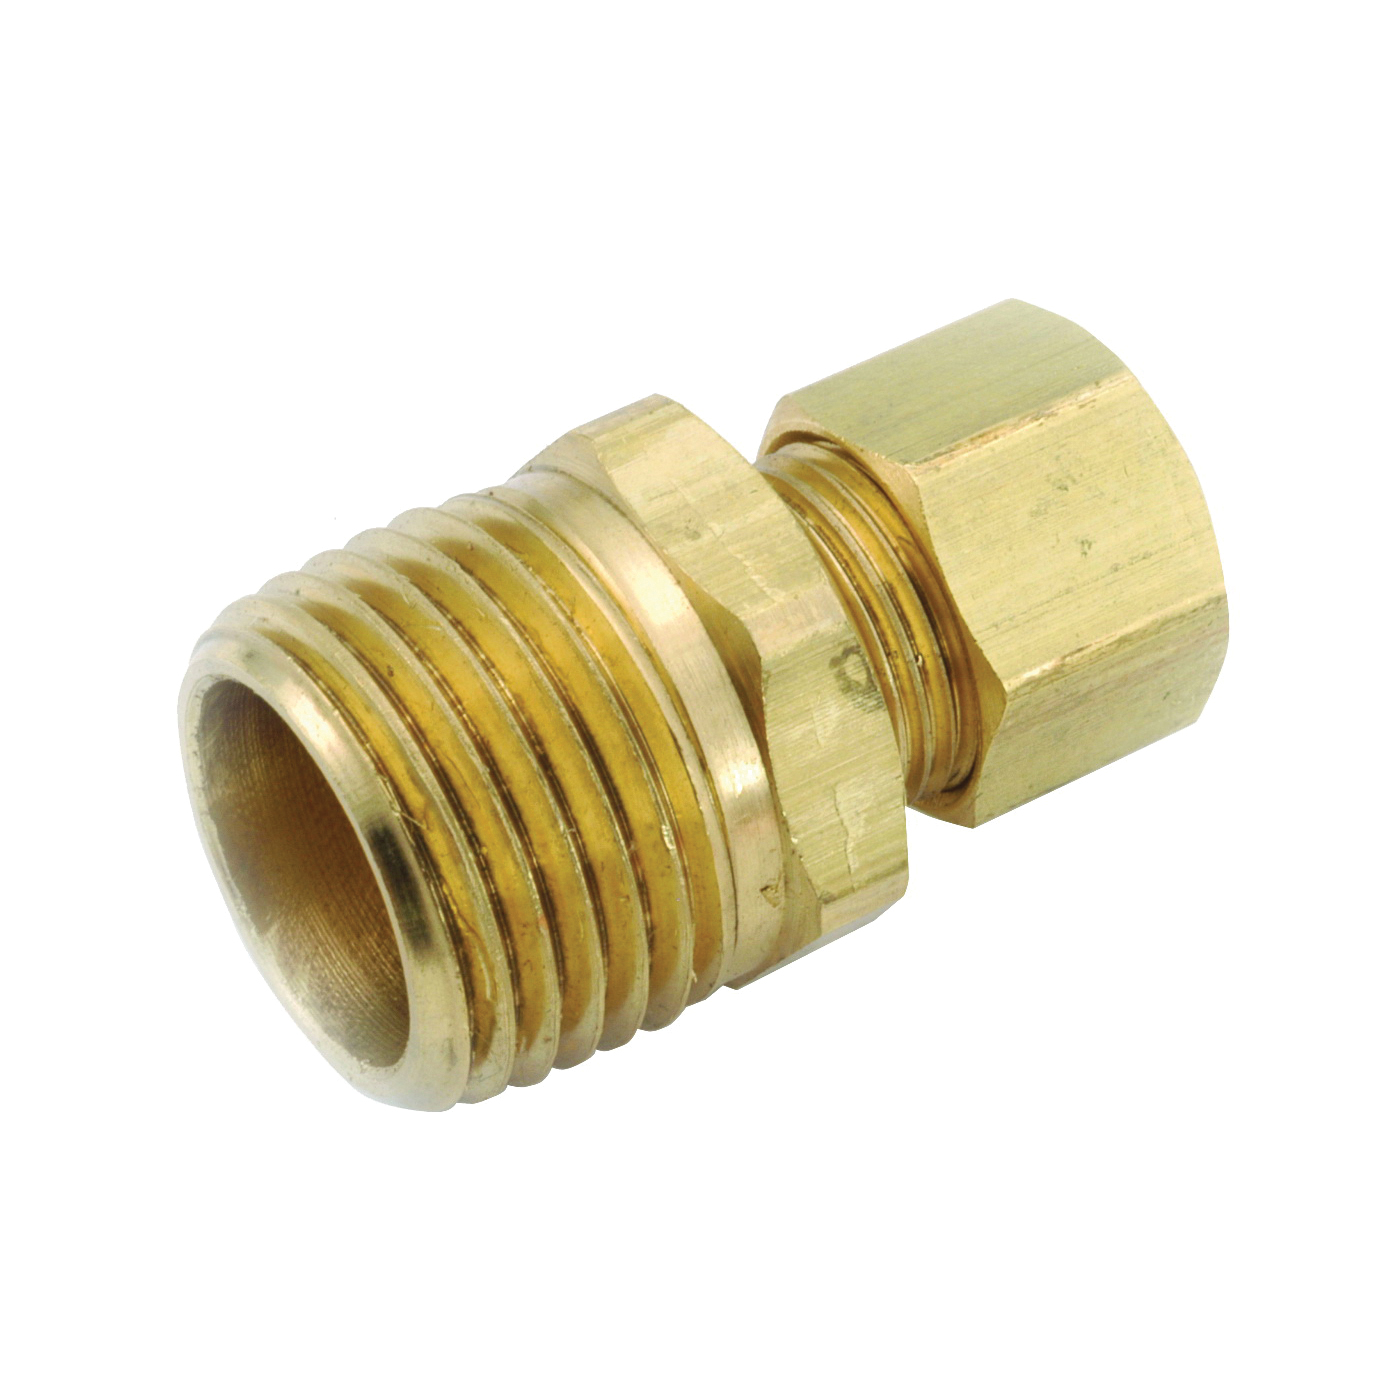 Picture of Anderson Metals 750068-0608 Connector, 3/8 in Compression, 1/2 in Male